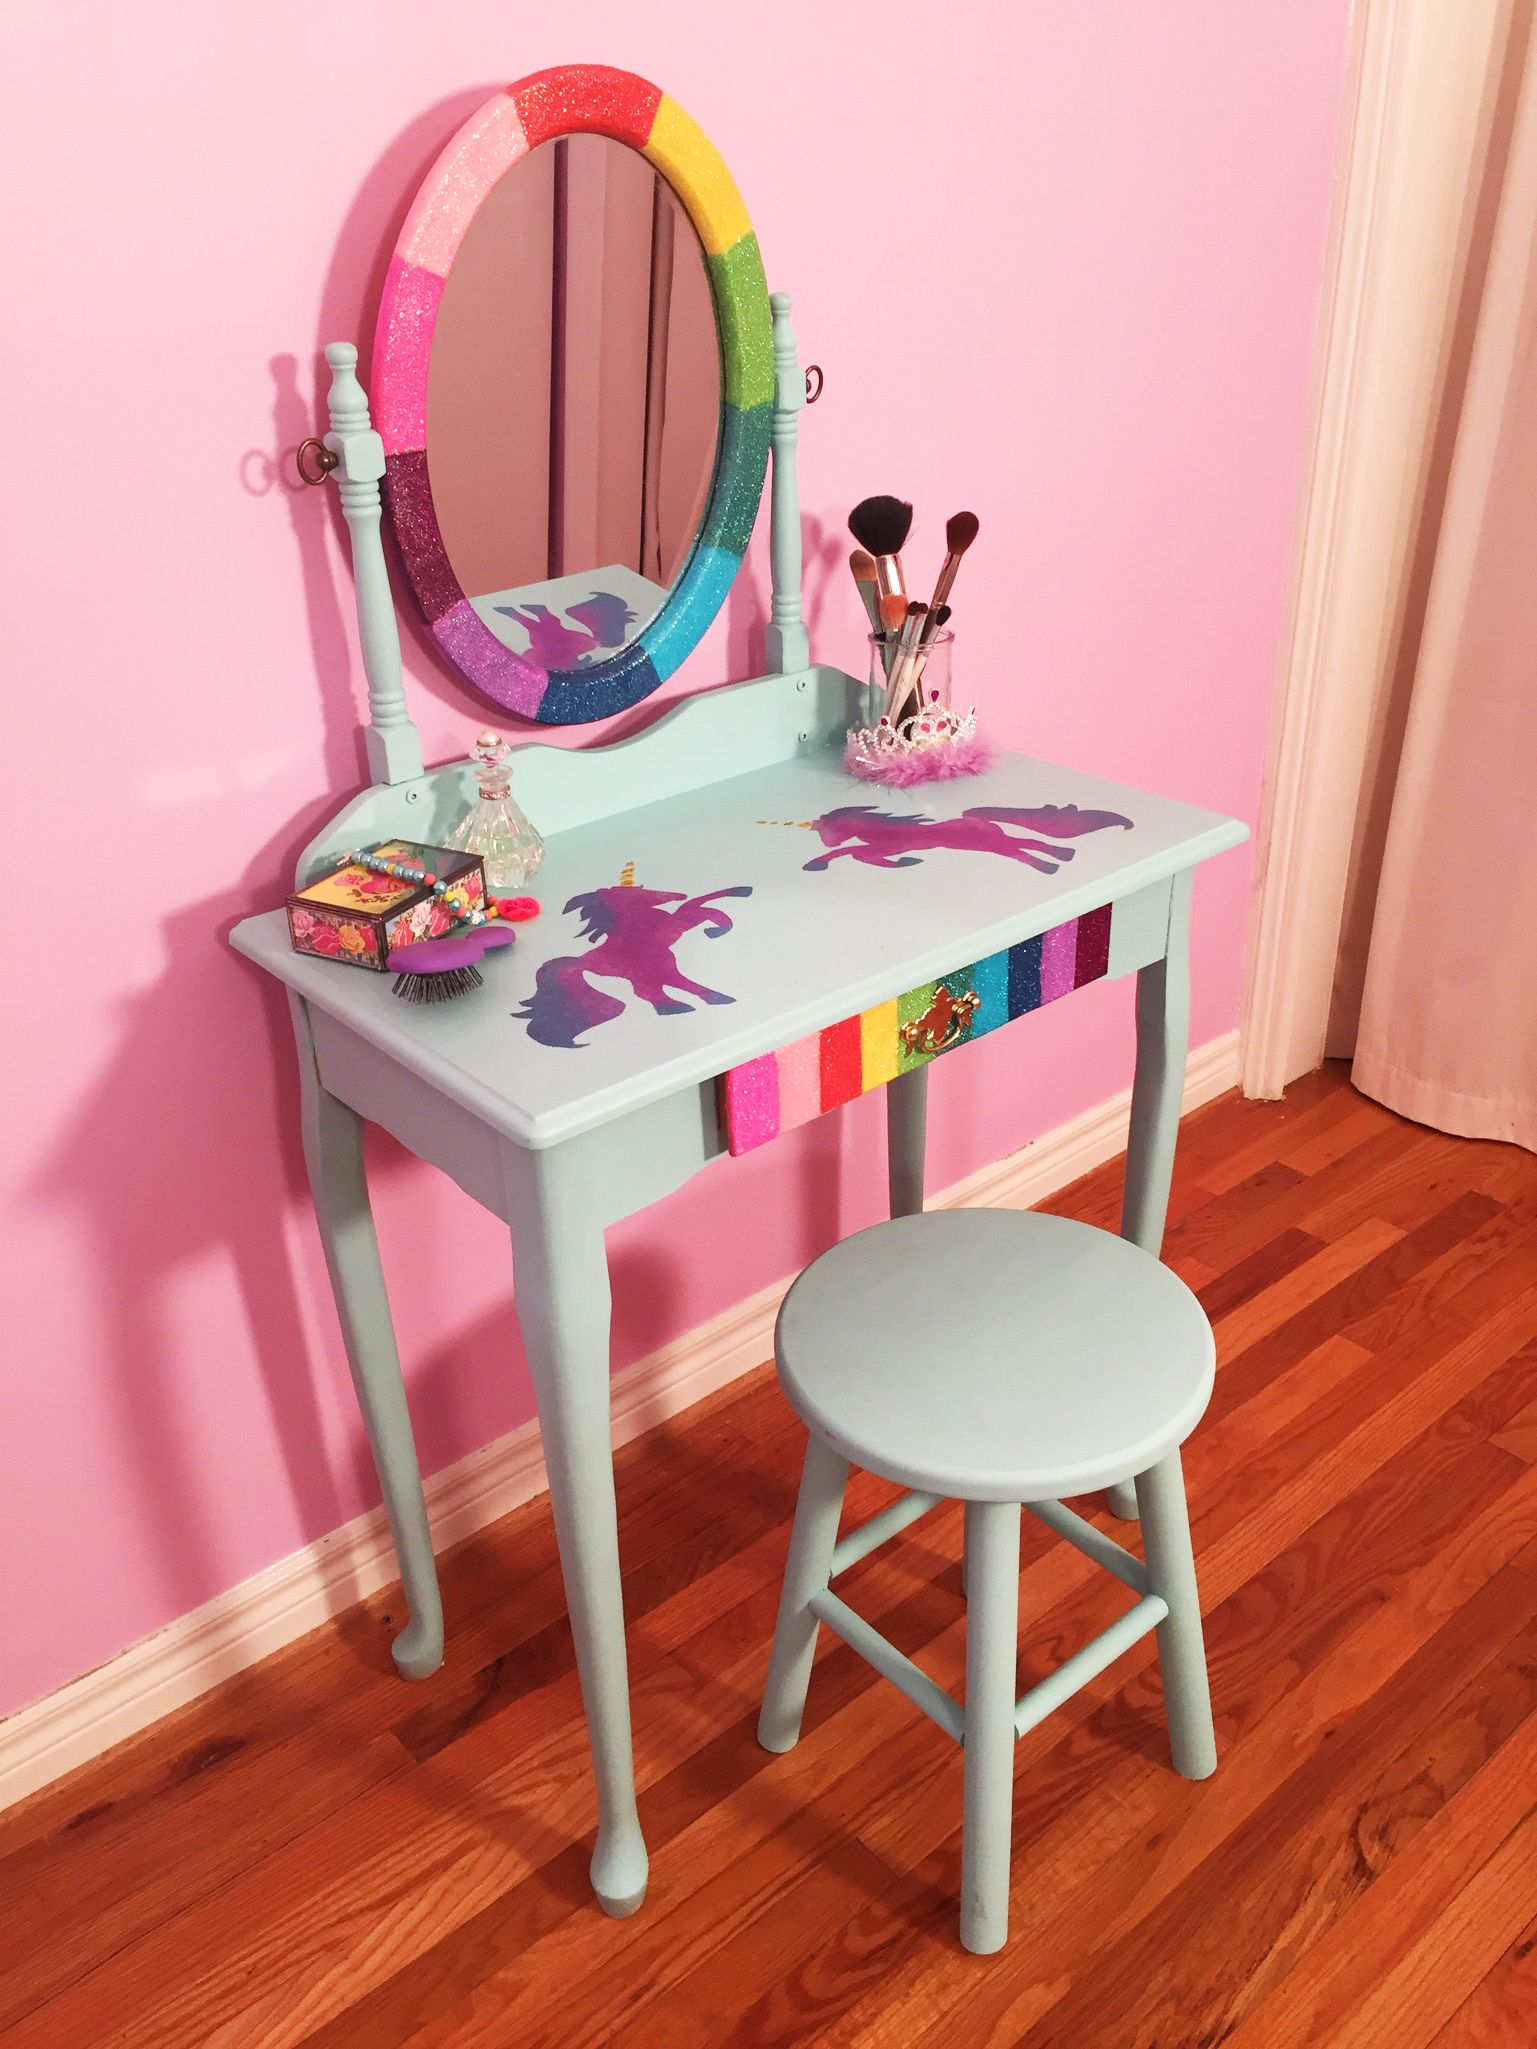 DIY Glitter Rainbow and Galatic Unicorn Makeup Vanity Furniture